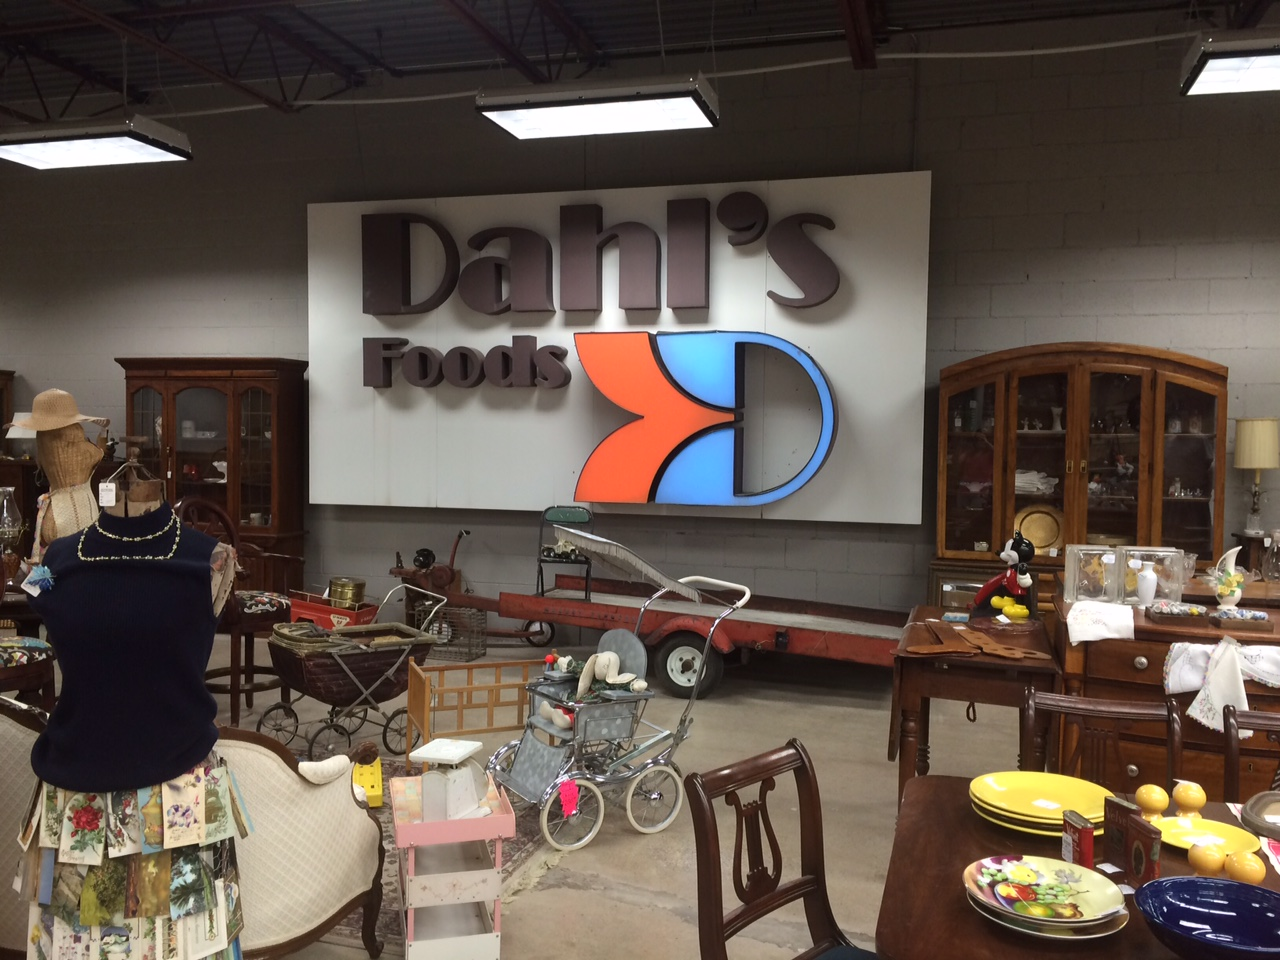 Dahls Sign - The Picker Knows